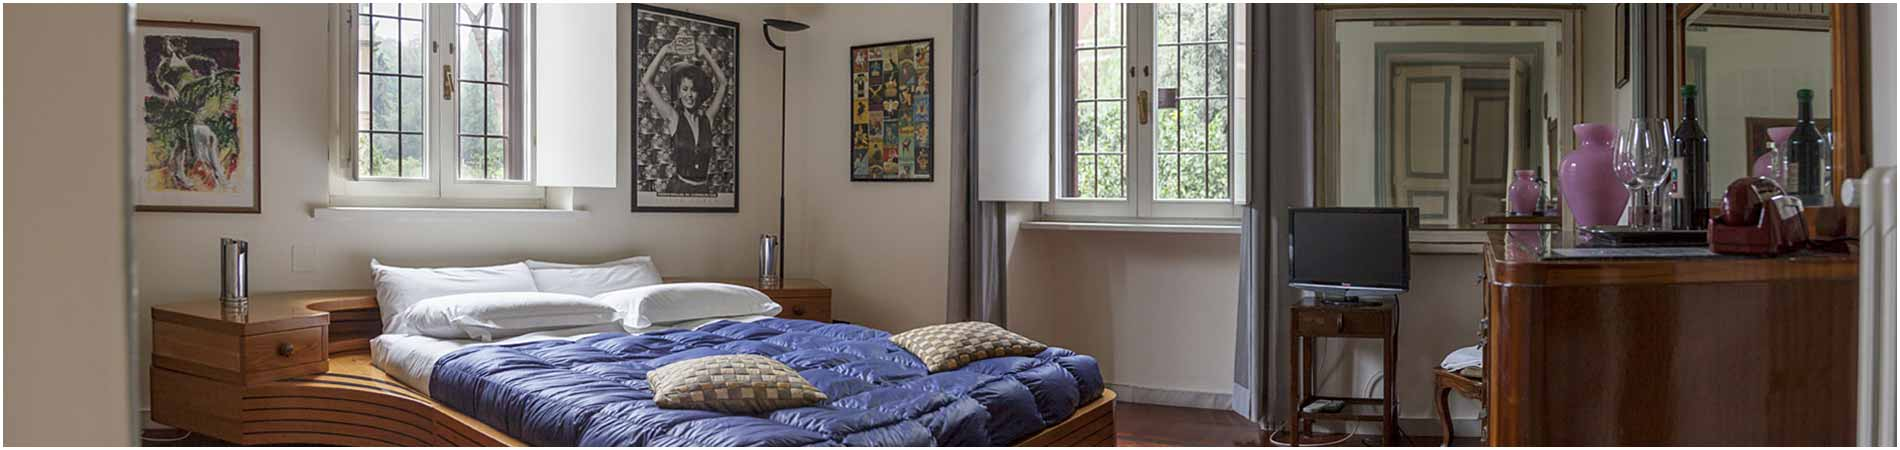 Bed and Breakfast Roma Trastevere